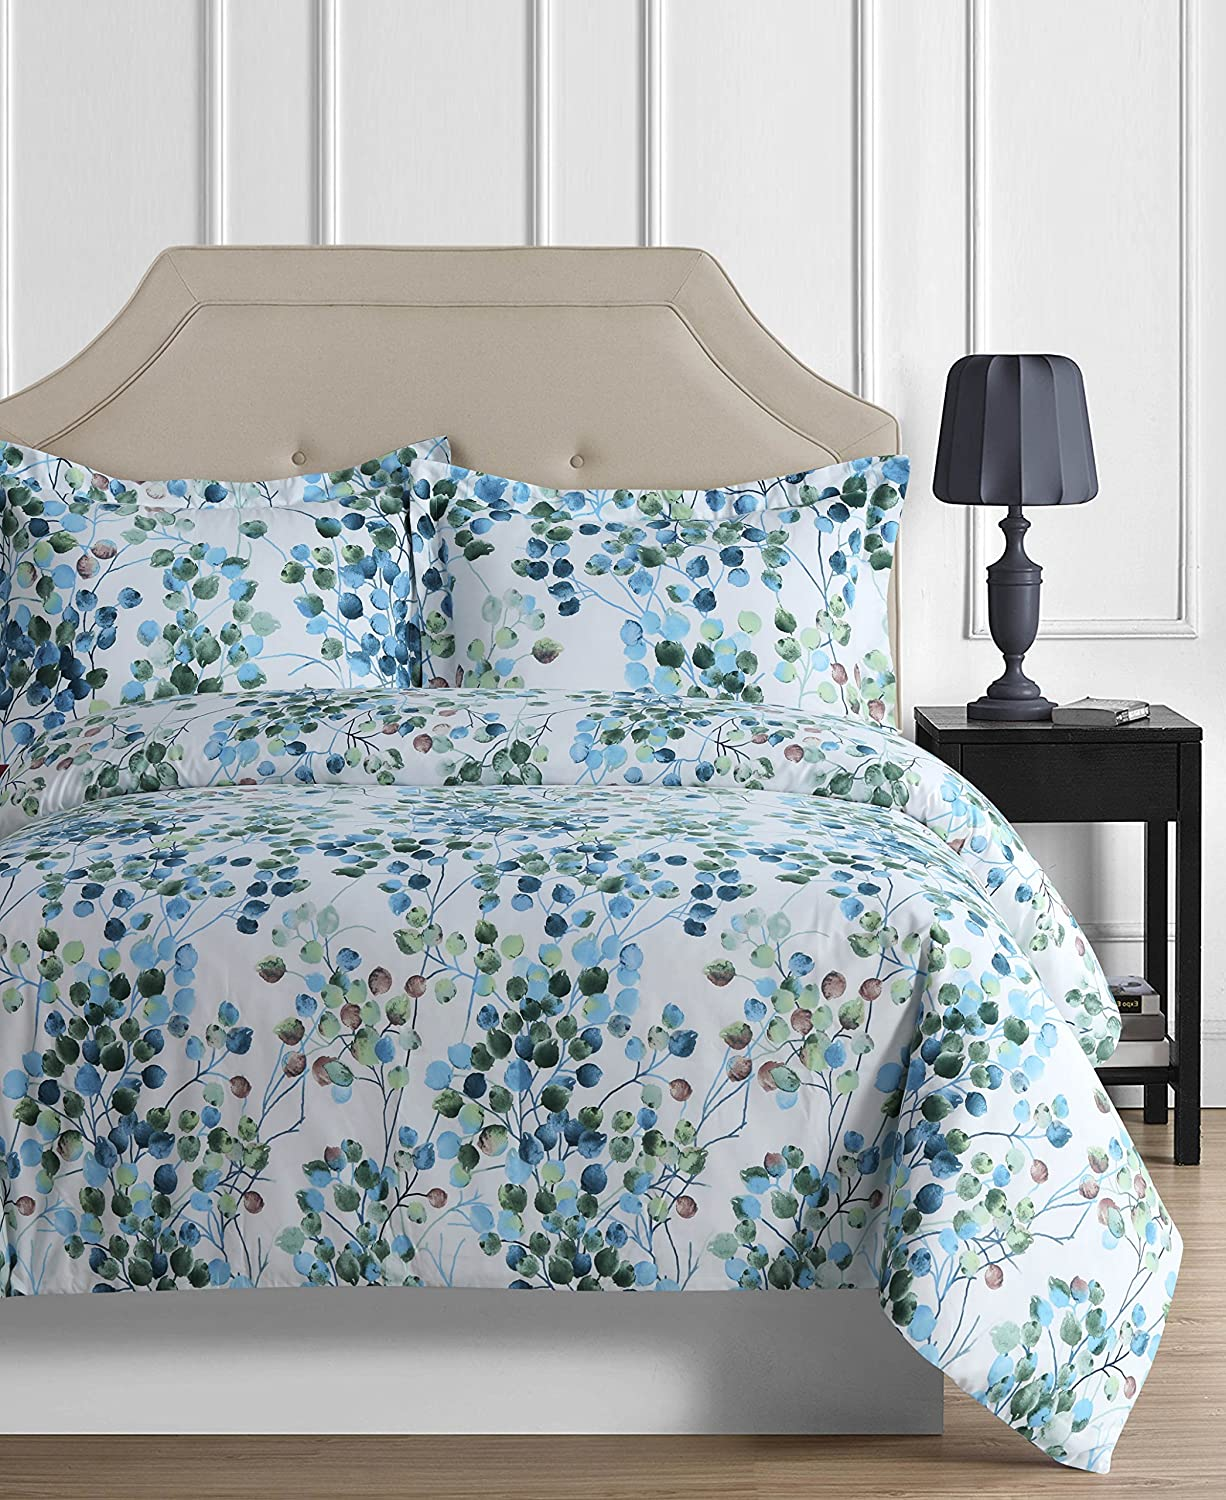 Tribeca Living LEA120DUVETQU Madrid Tropical Rainforest Oversized Duvet Set, Queen, Leaves Multi